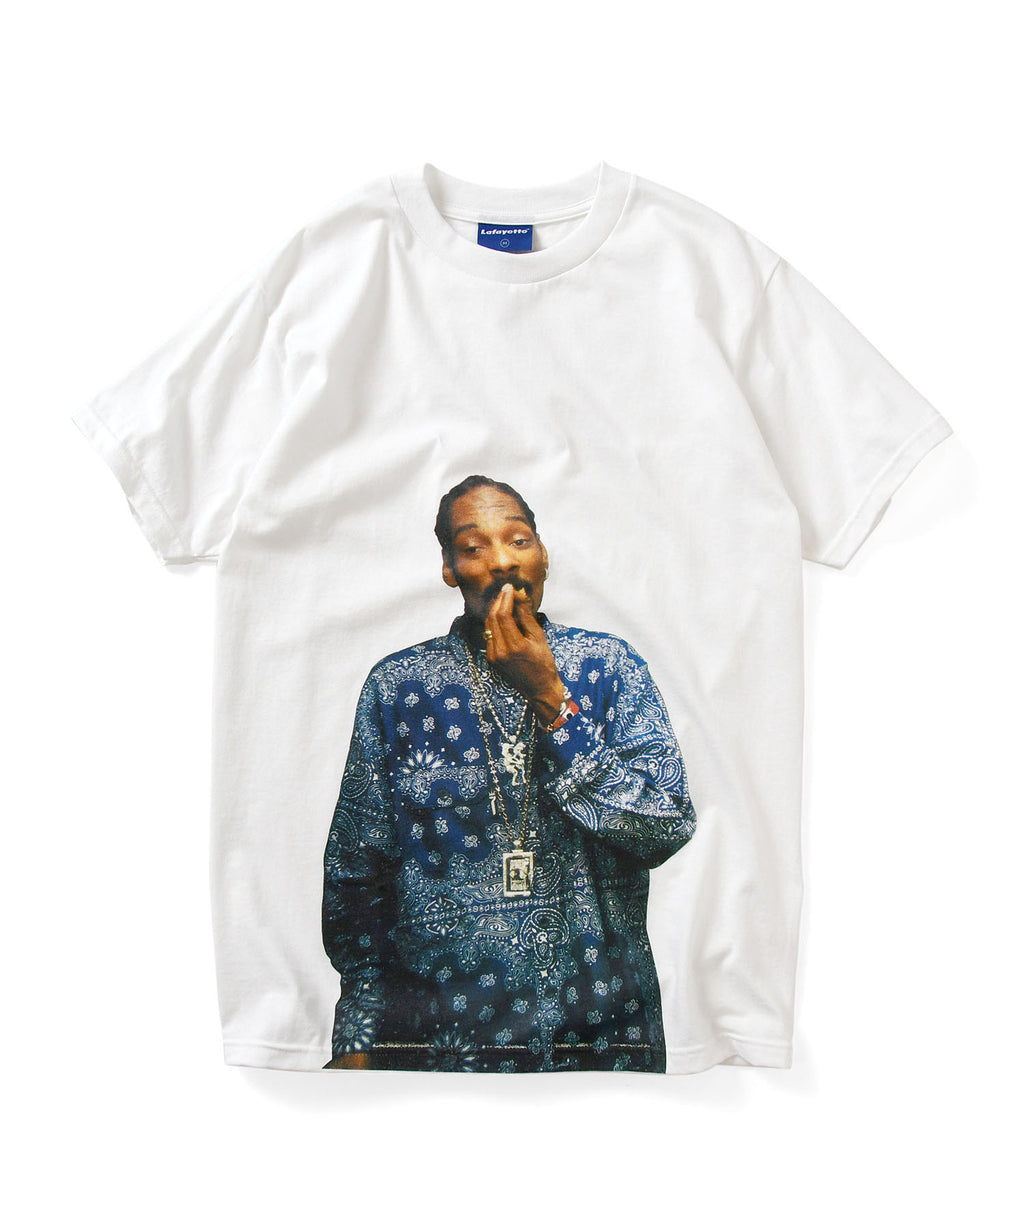 Lafayette × JOHNNY NUNEZ SNOOP DOG TEE LS200124 WHITE